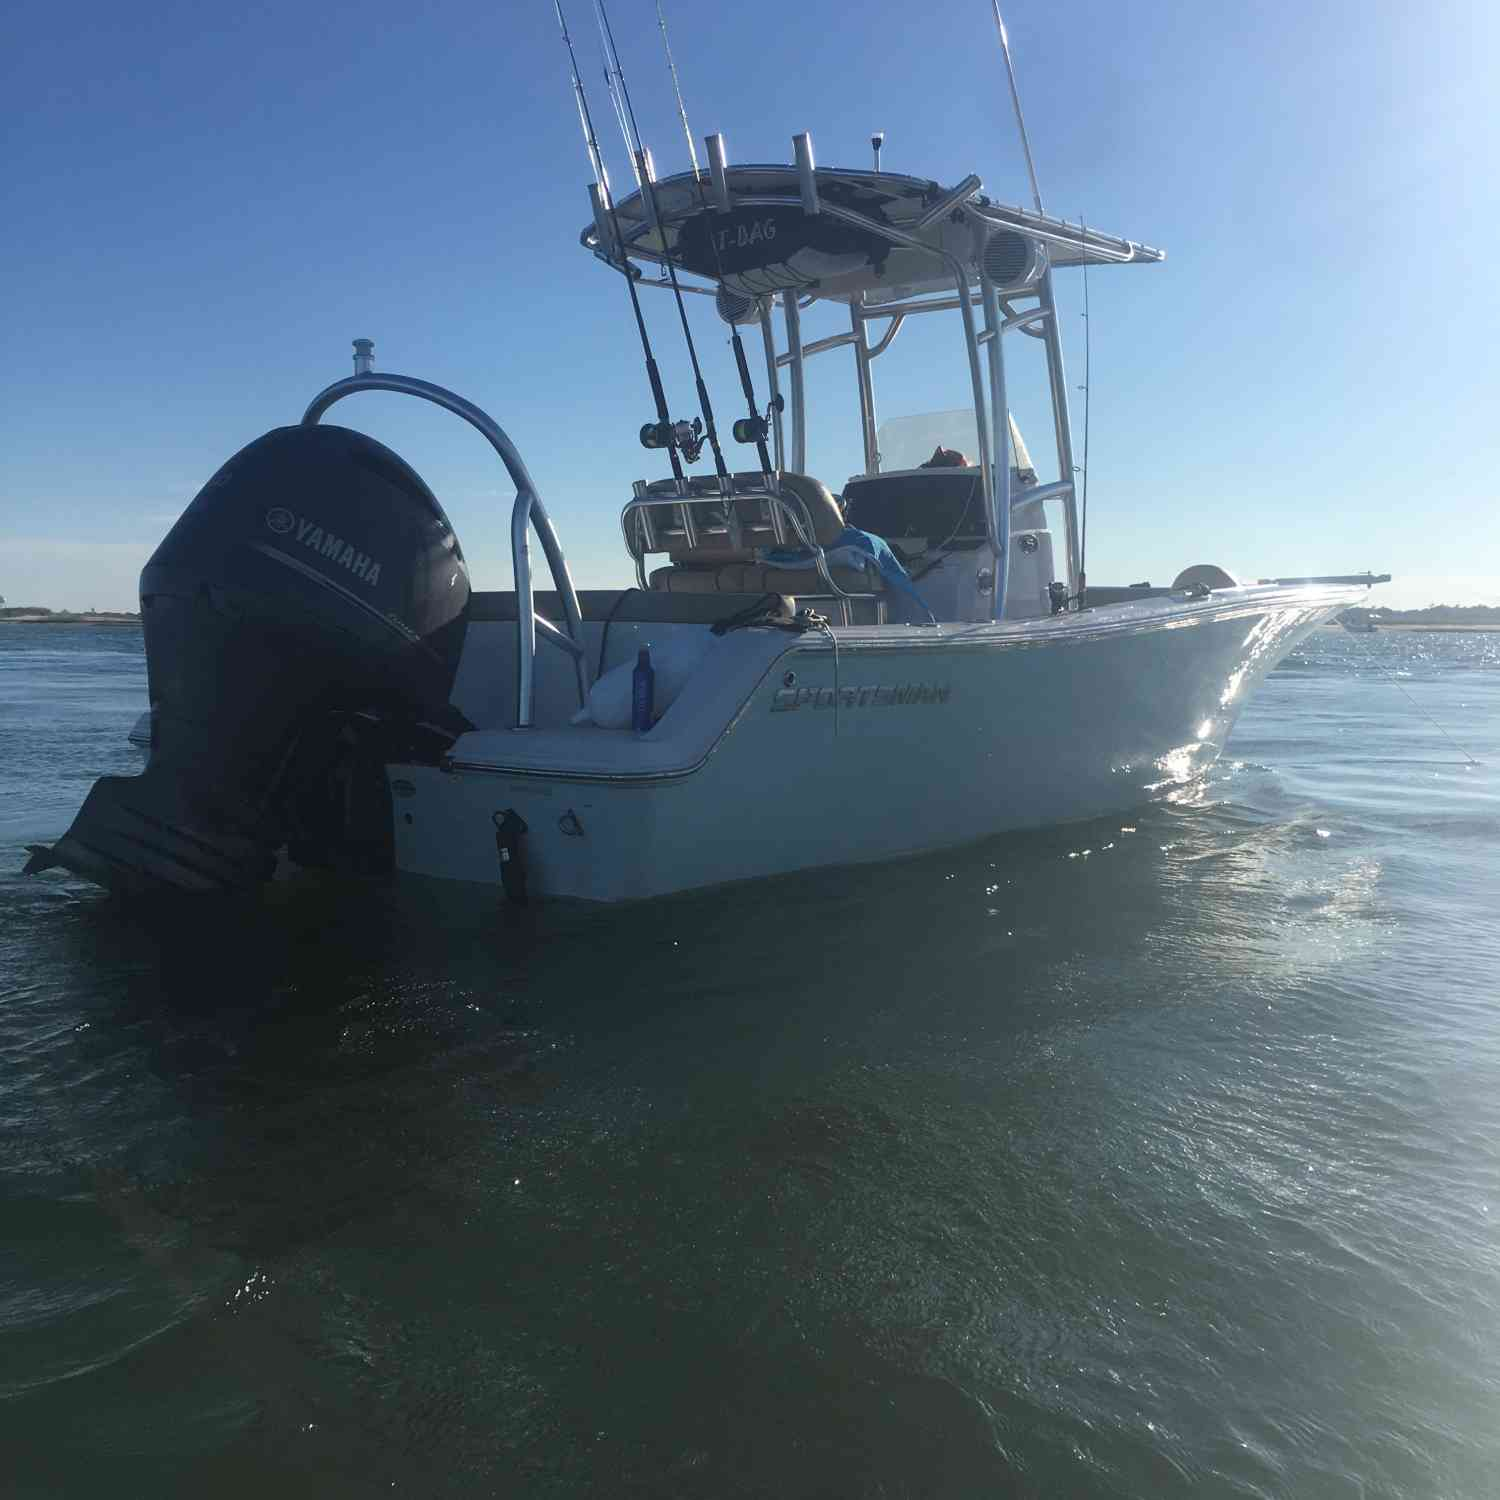 Title: Calm before the Storm #GoAwayFlo - On board their Sportsman Heritage 211 Center Console - Location: Wrightsville Beach, NC. Participating in the Photo Contest #SportsmanOctober2018